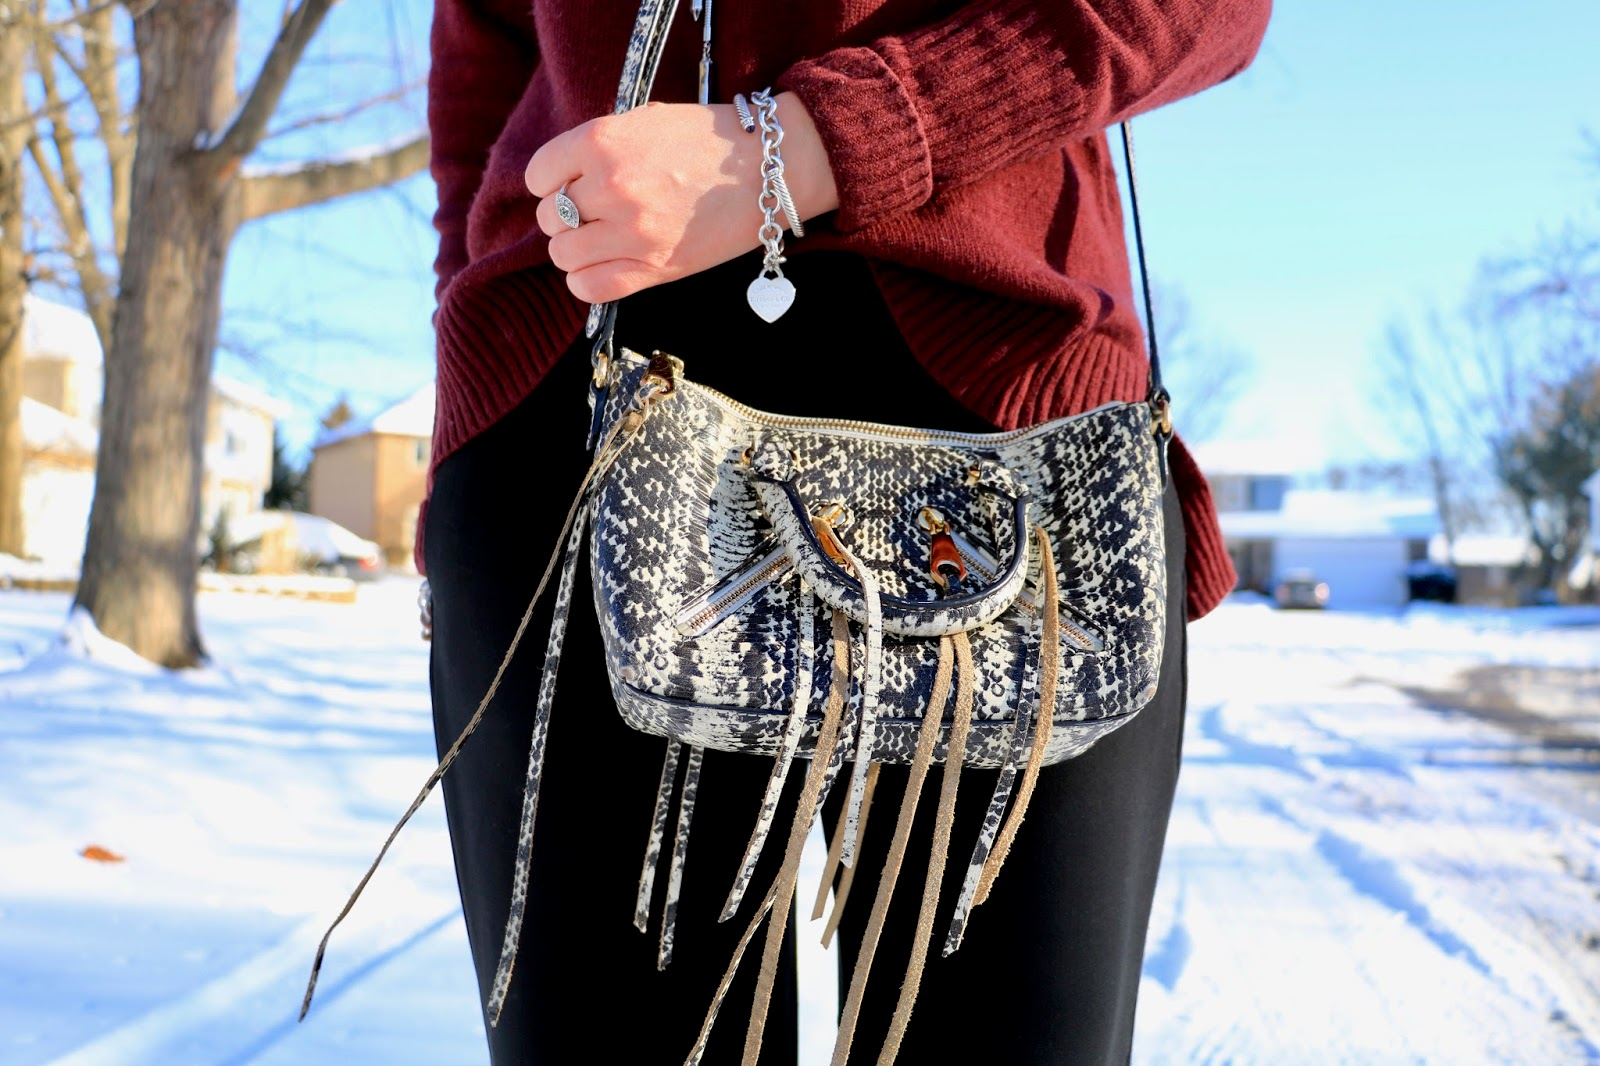 Nyc fashion blogger Kathleen Harper wearing a Rebecca Minkoff snakeskin purse